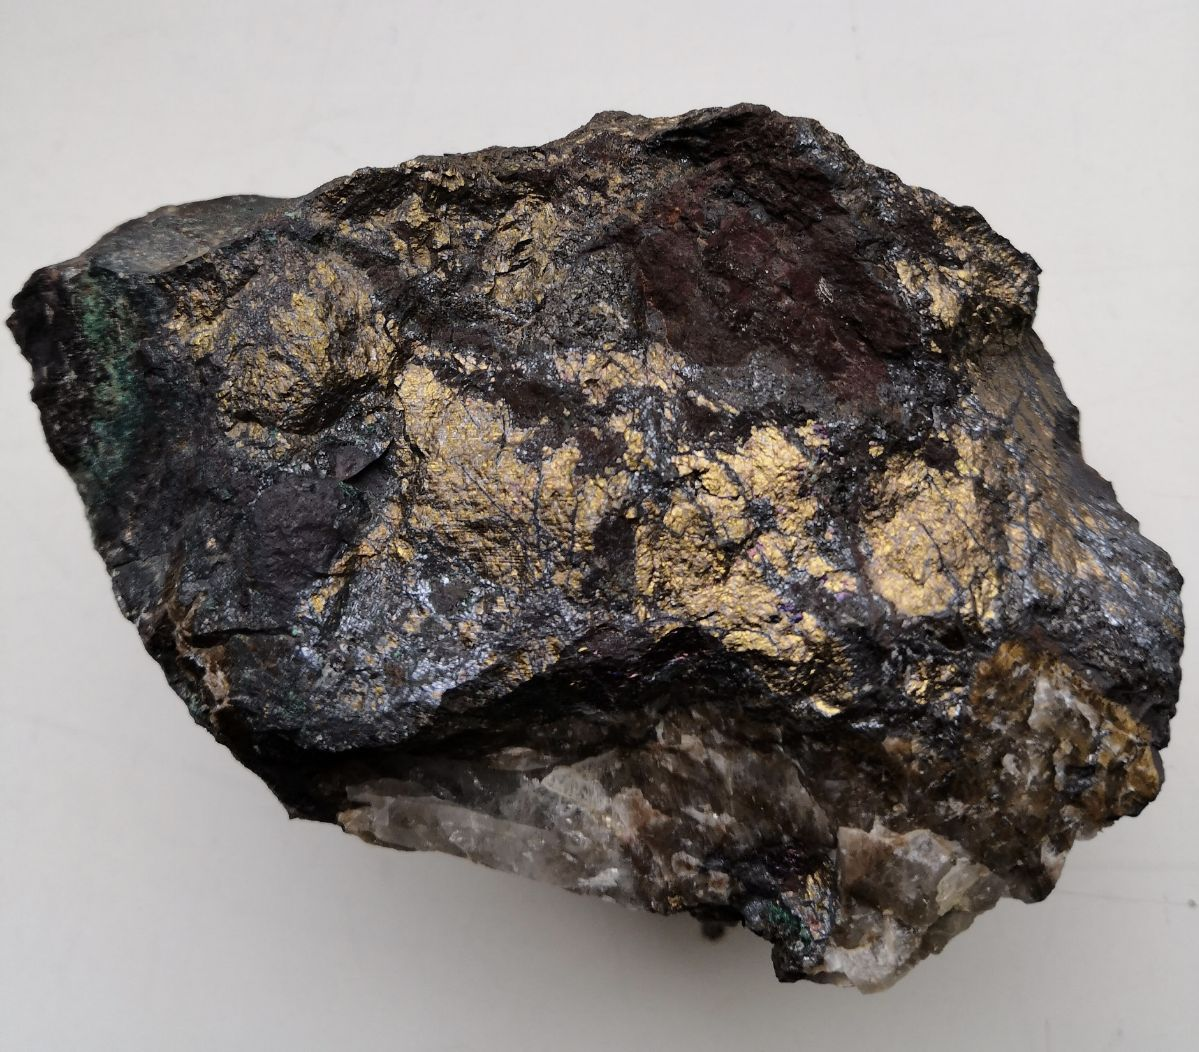 Sample DWGRR001: 15.84% Cu and 0.58g/t Au from artisanal working in Dongwe licence 22562.